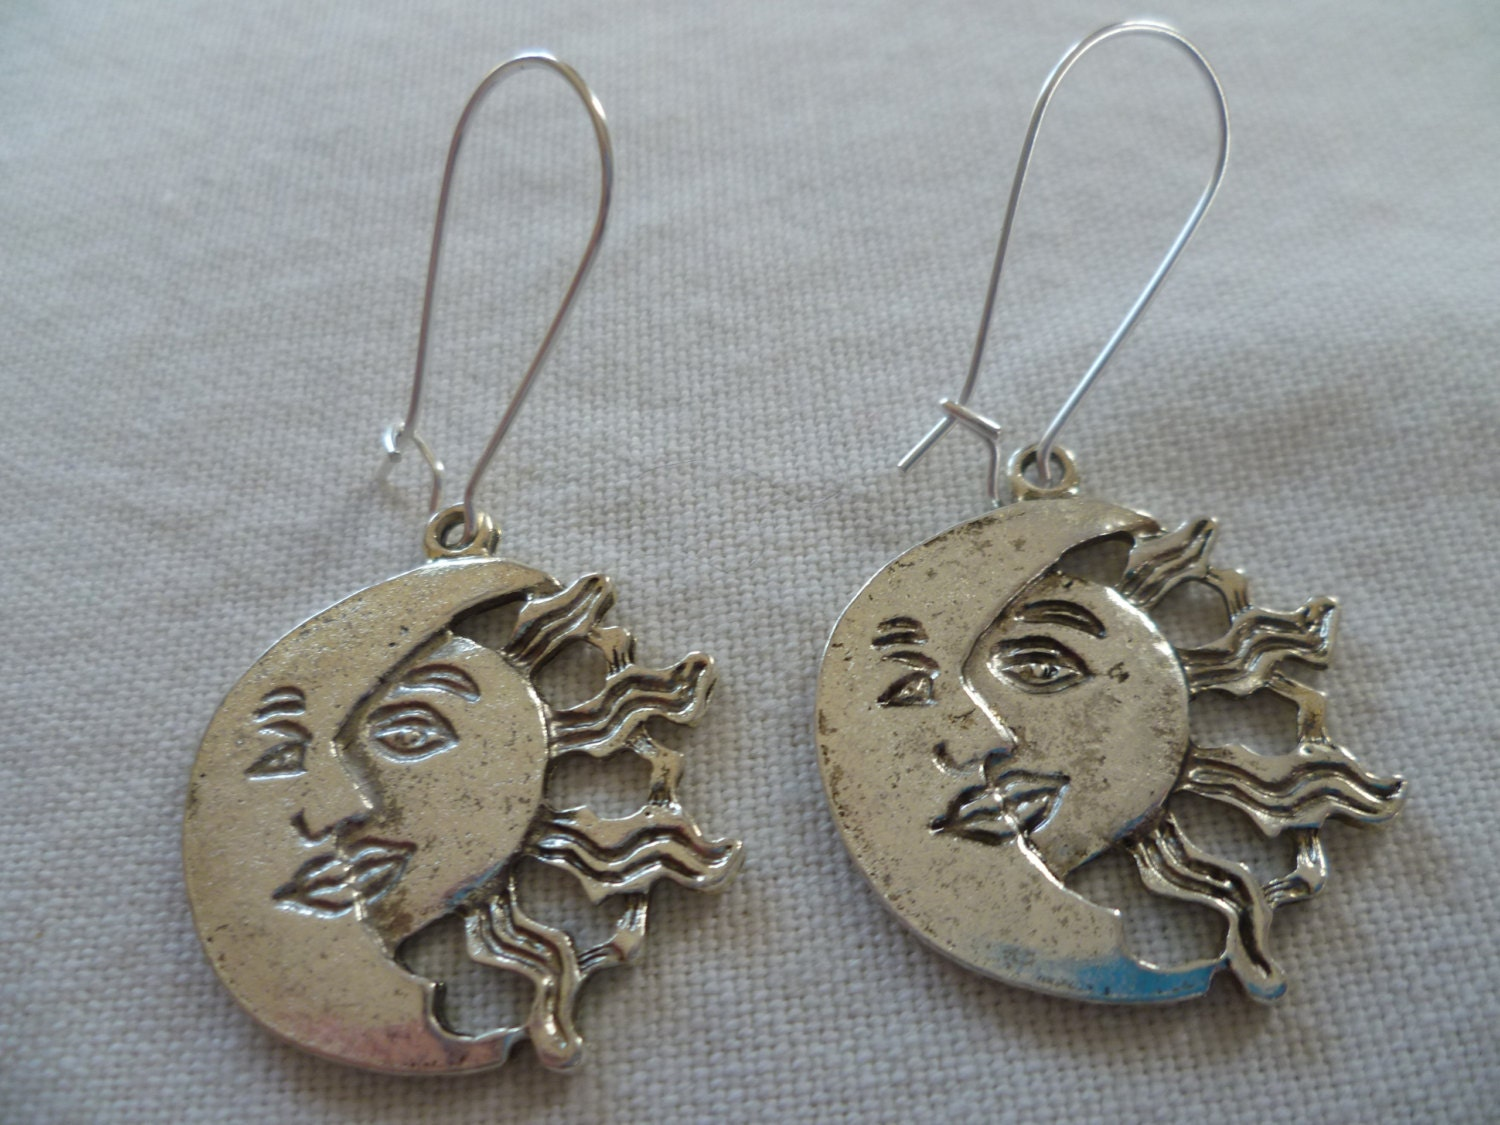 sun and moon earrings sun earrings moon earrings planet